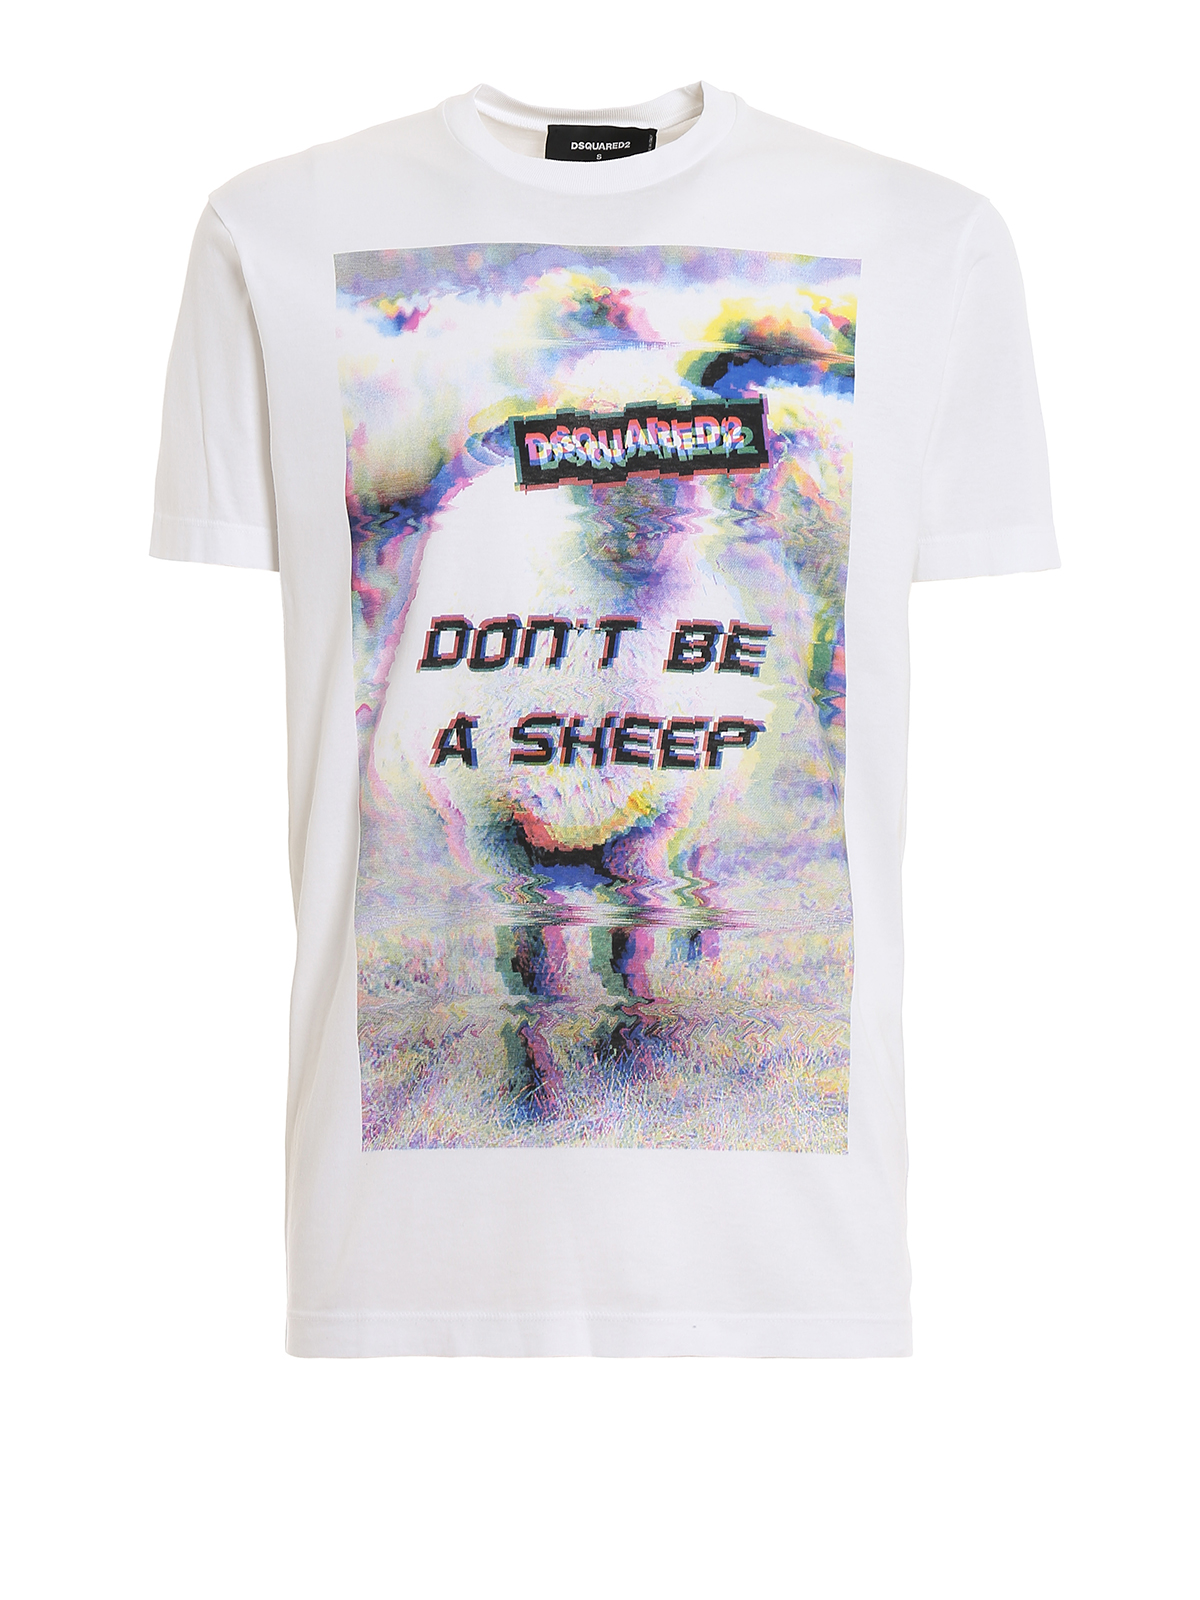 Dsquared2 Blurry Print T-shirt In Green,white